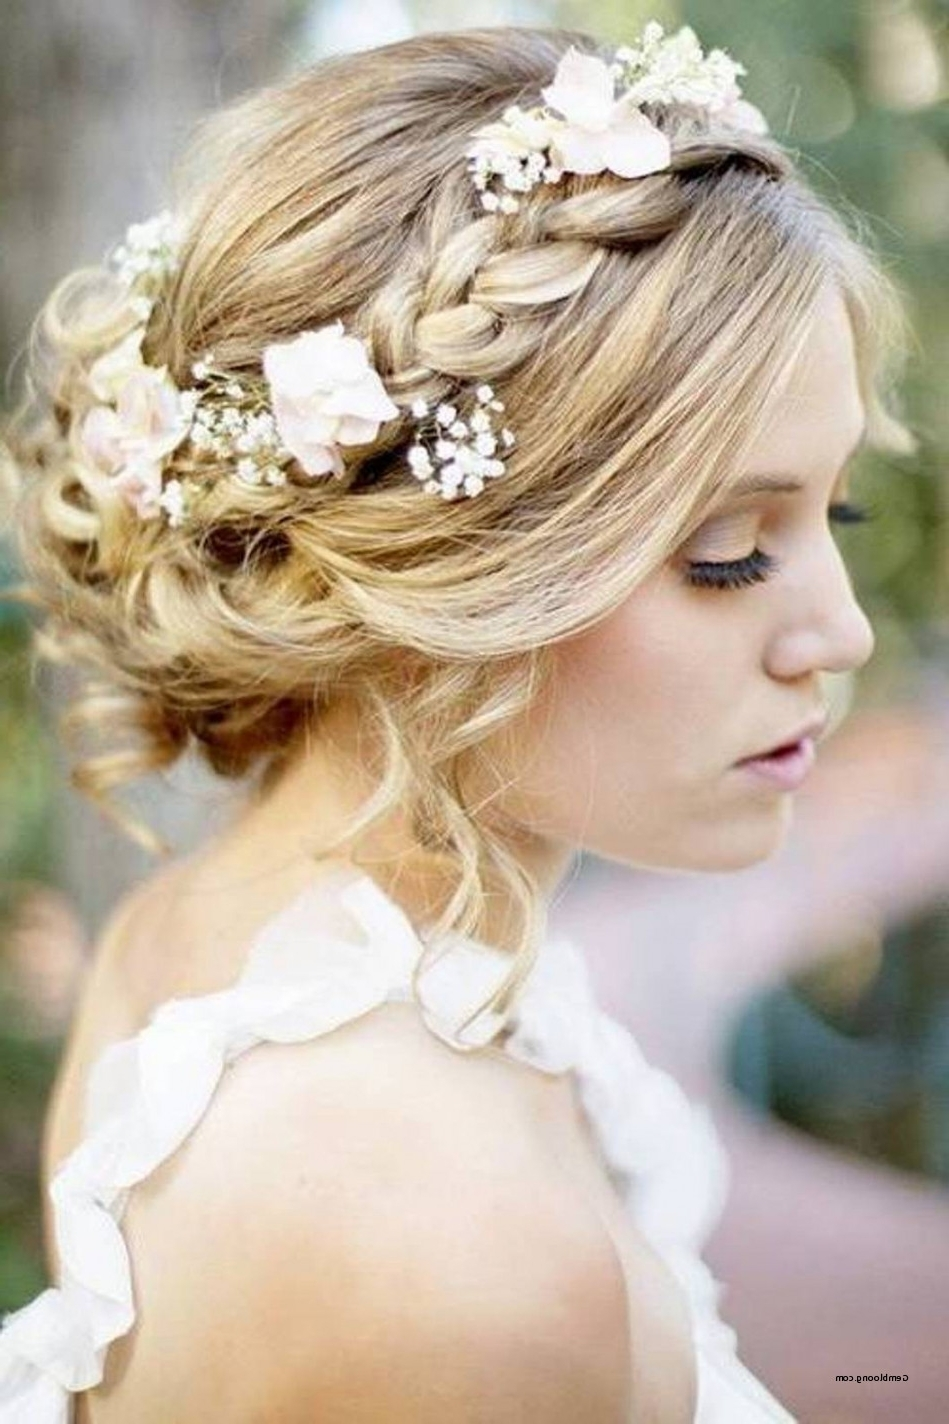 Short Hair Wedding Styles With Tiara Lovely Wedding Hairstyles For Intended For Recent Wedding Hairstyles With Tiara And Veil (View 11 of 15)